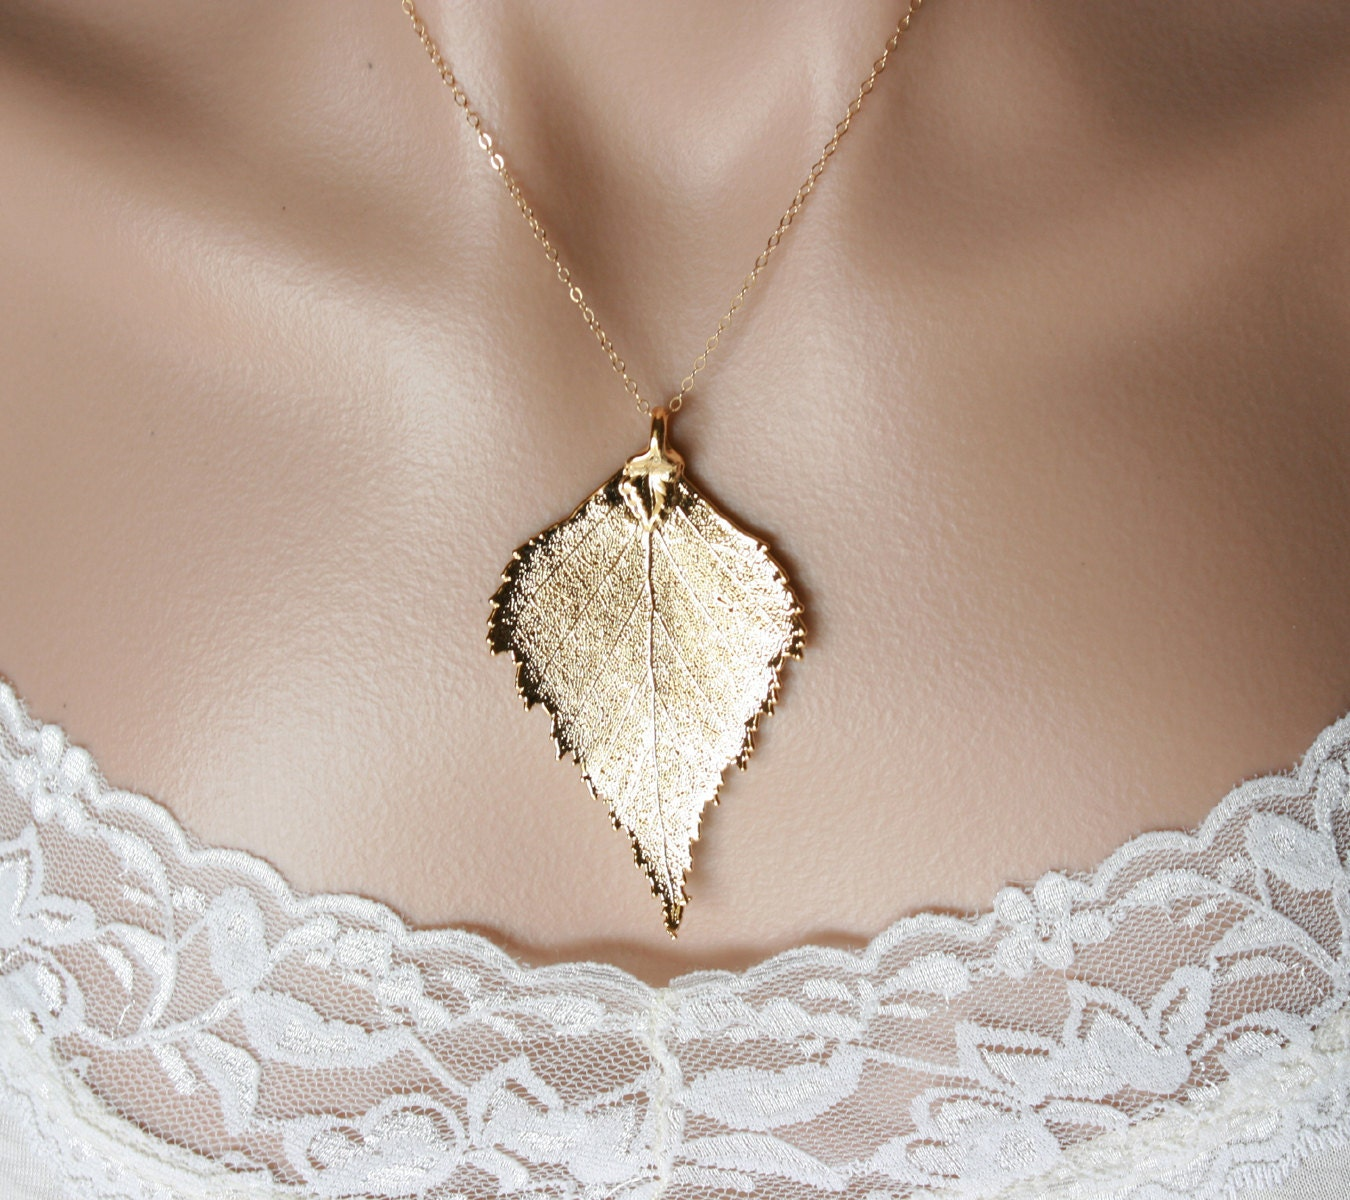 Gold dipped birch leaf necklace - gold filled chain - fall wedding jewelry, bridal jewelry, bridesmaids gifts, everyday jewelry